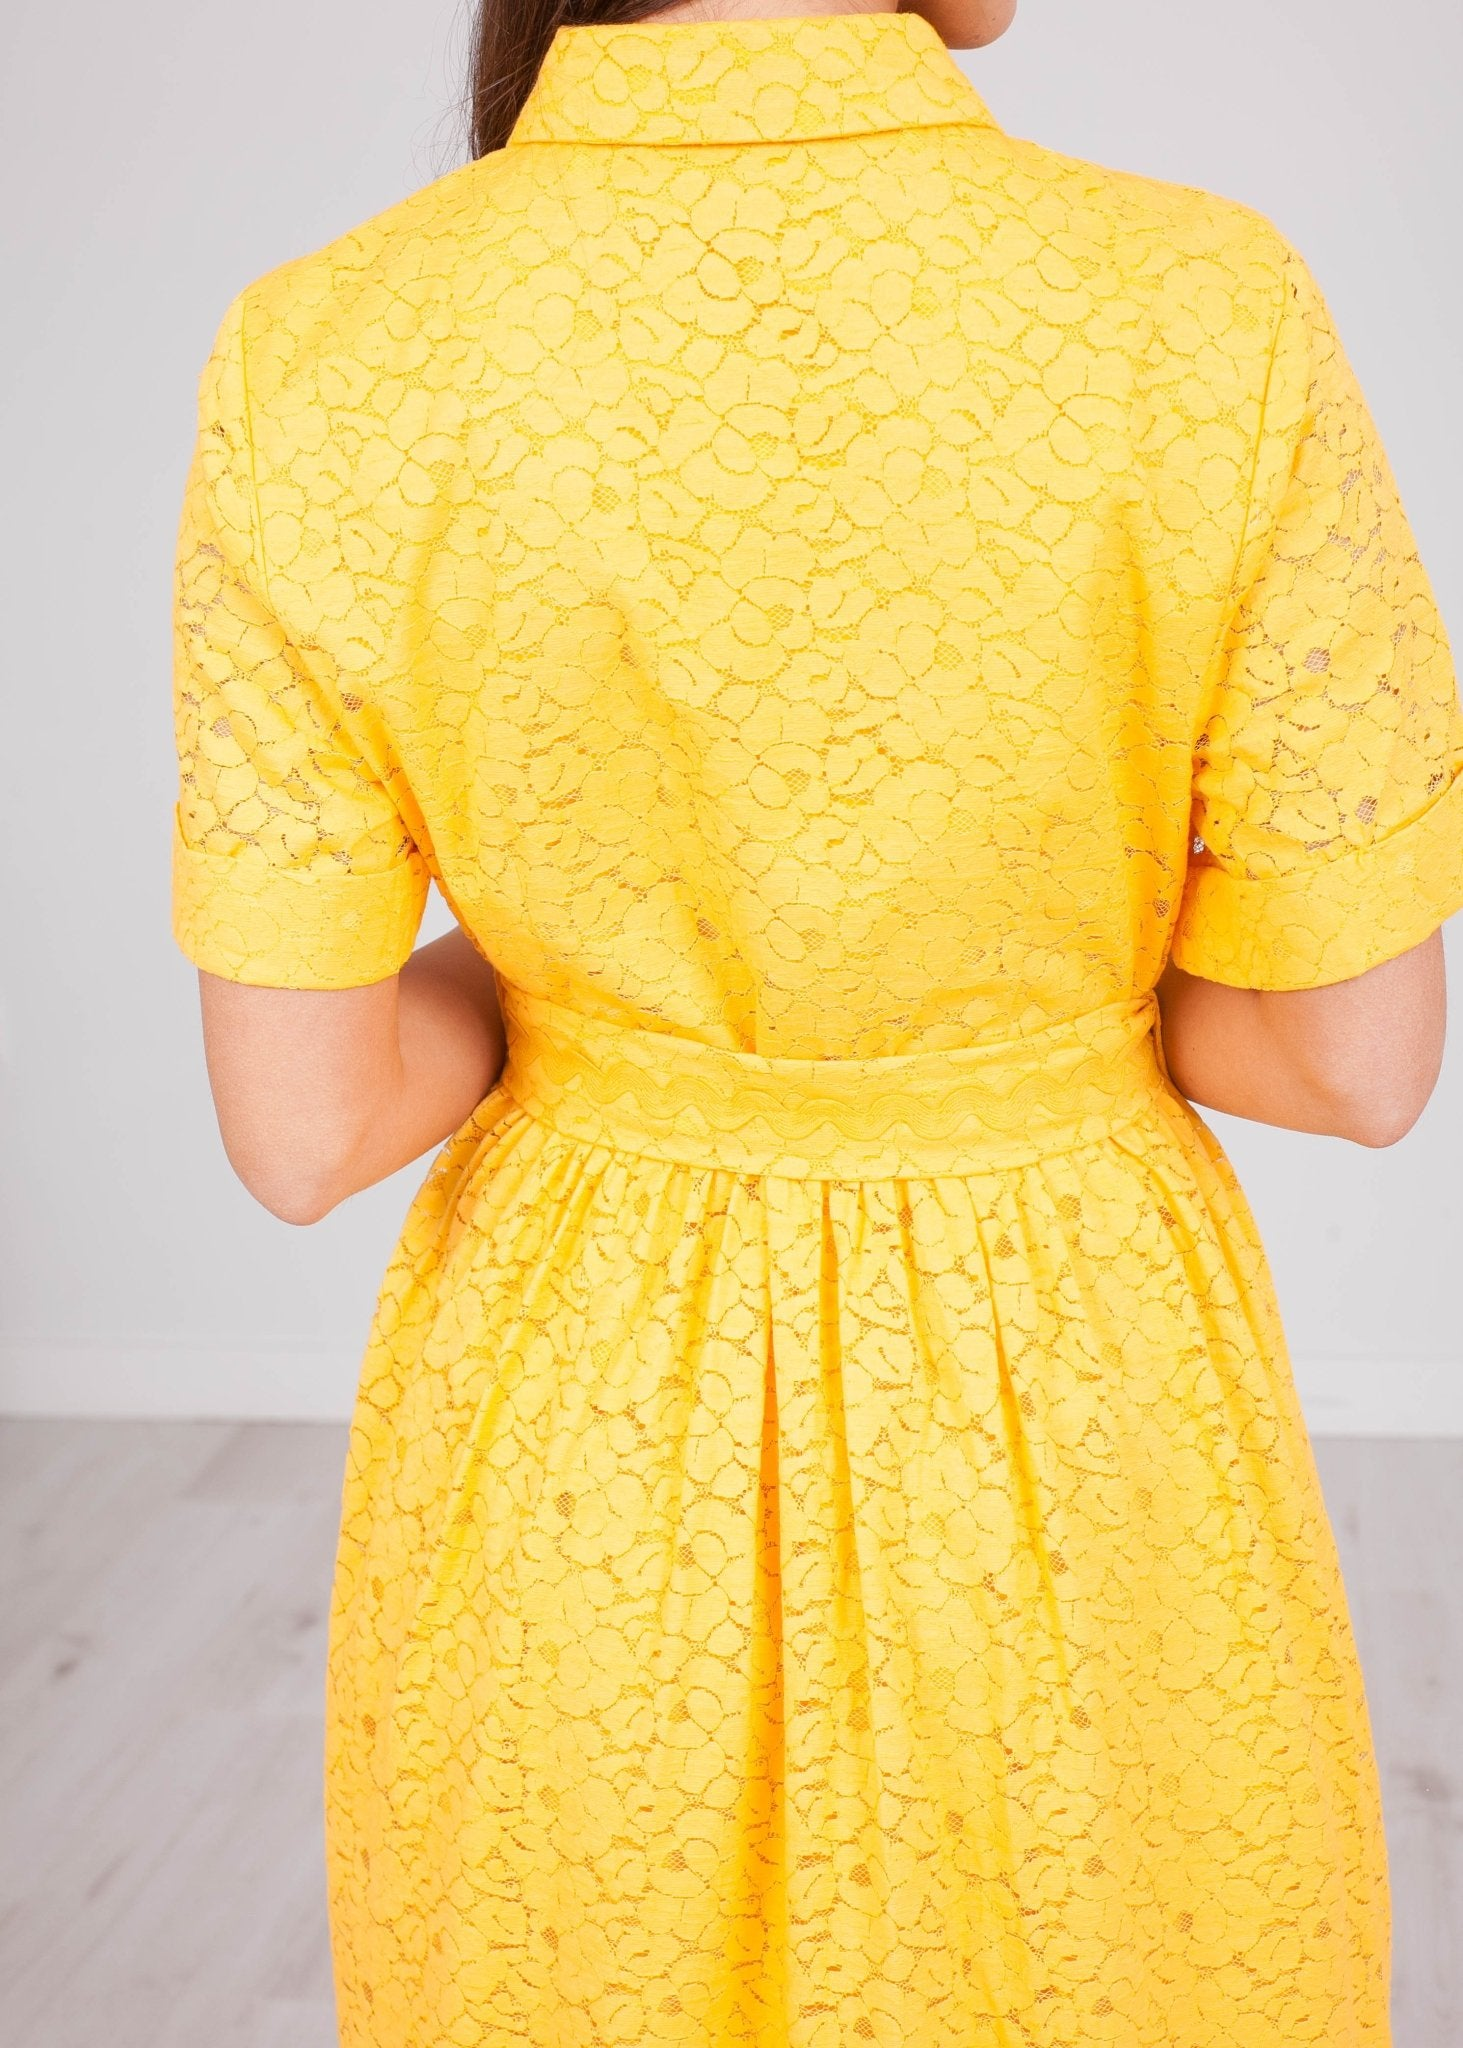 Emily Yellow Lace Dress - The Walk in Wardrobe